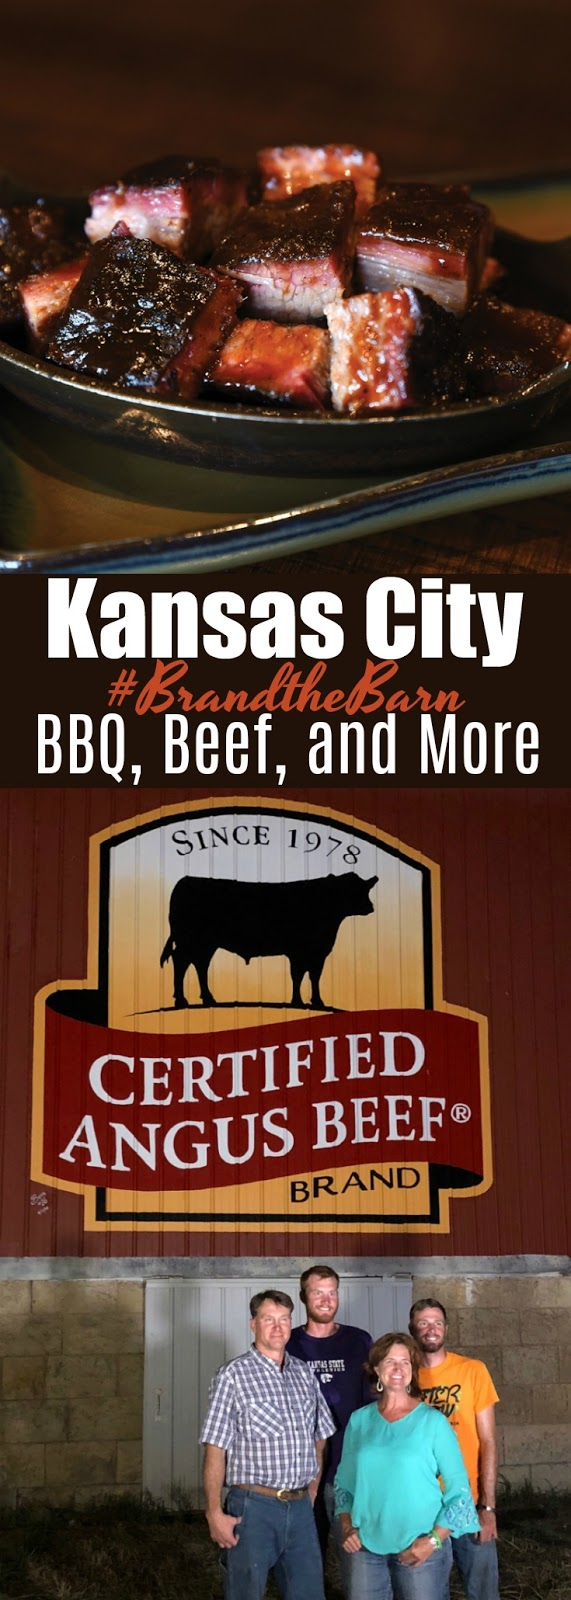 My trip to The Blythe Family Farm, and the Tiffany Cattle Co. in Kansas with Certified Angus Beef ® brand. #brandthebarn #bestangusbeef #certifiedangusbeef #kansascity #BBQ #beef #travel | www.bobbiskozykitchen.com